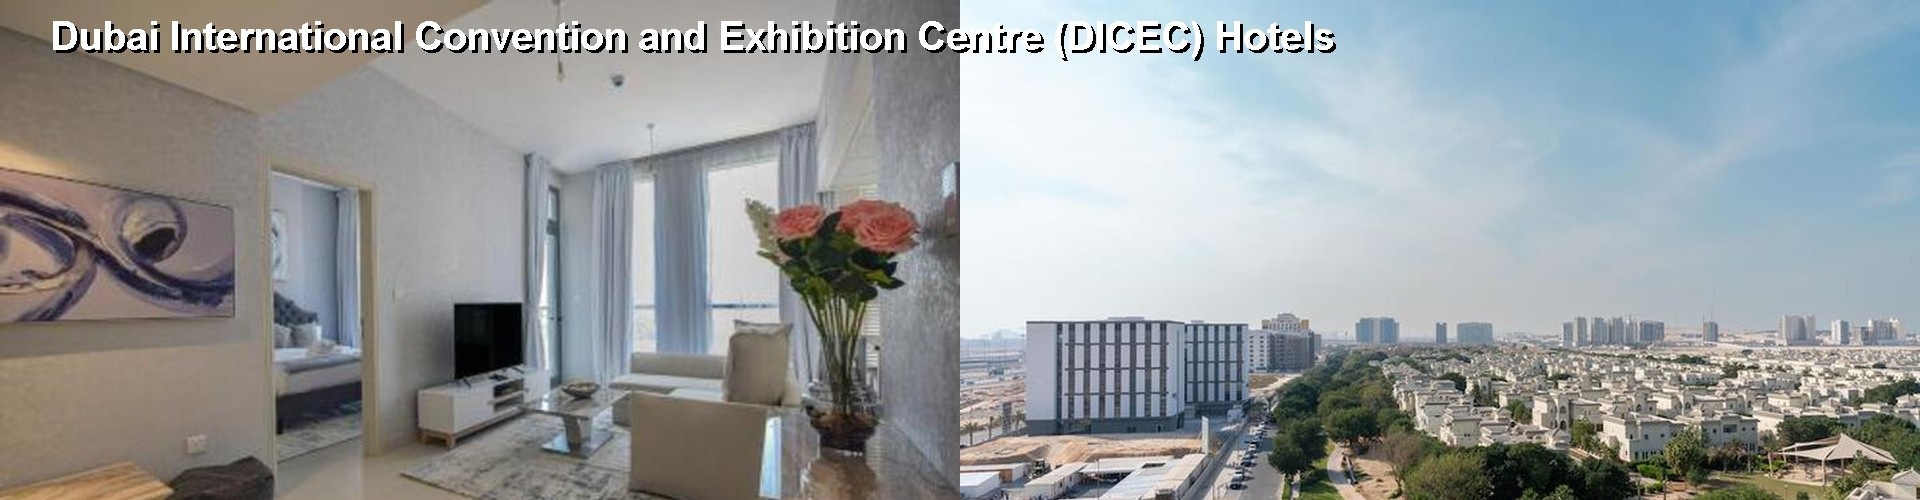 5 Best Hotels near Dubai International Convention and Exhibition Centre (DICEC)